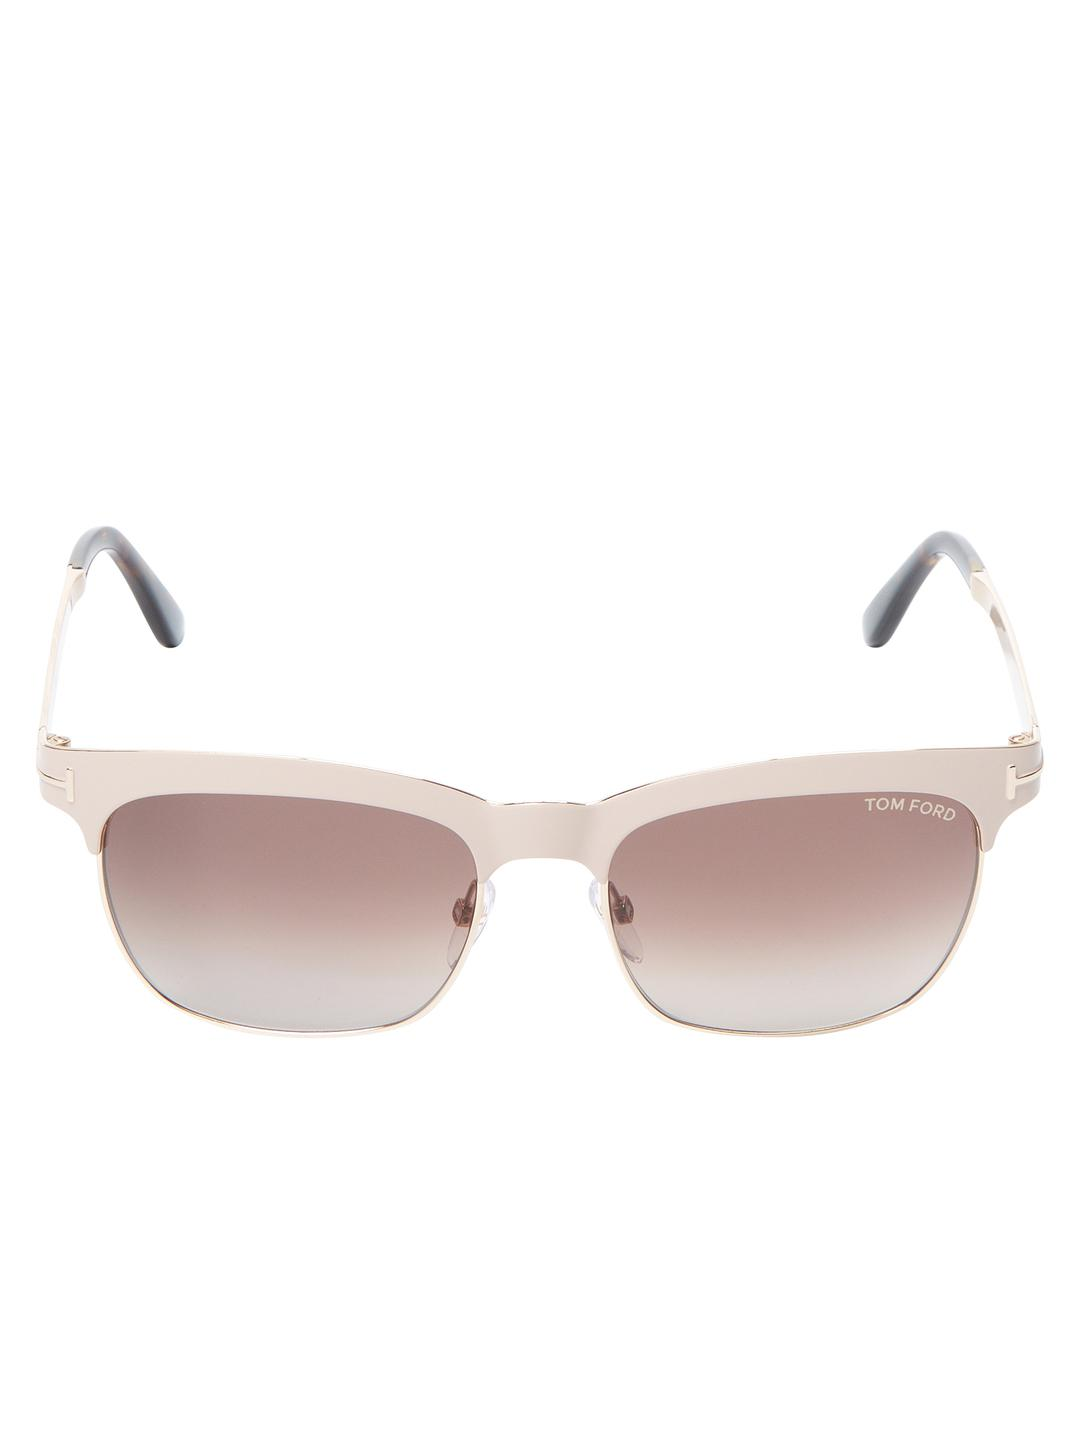 c13abd8d44 Lyst - Tom Ford Elena Gradient Square Frame in Pink